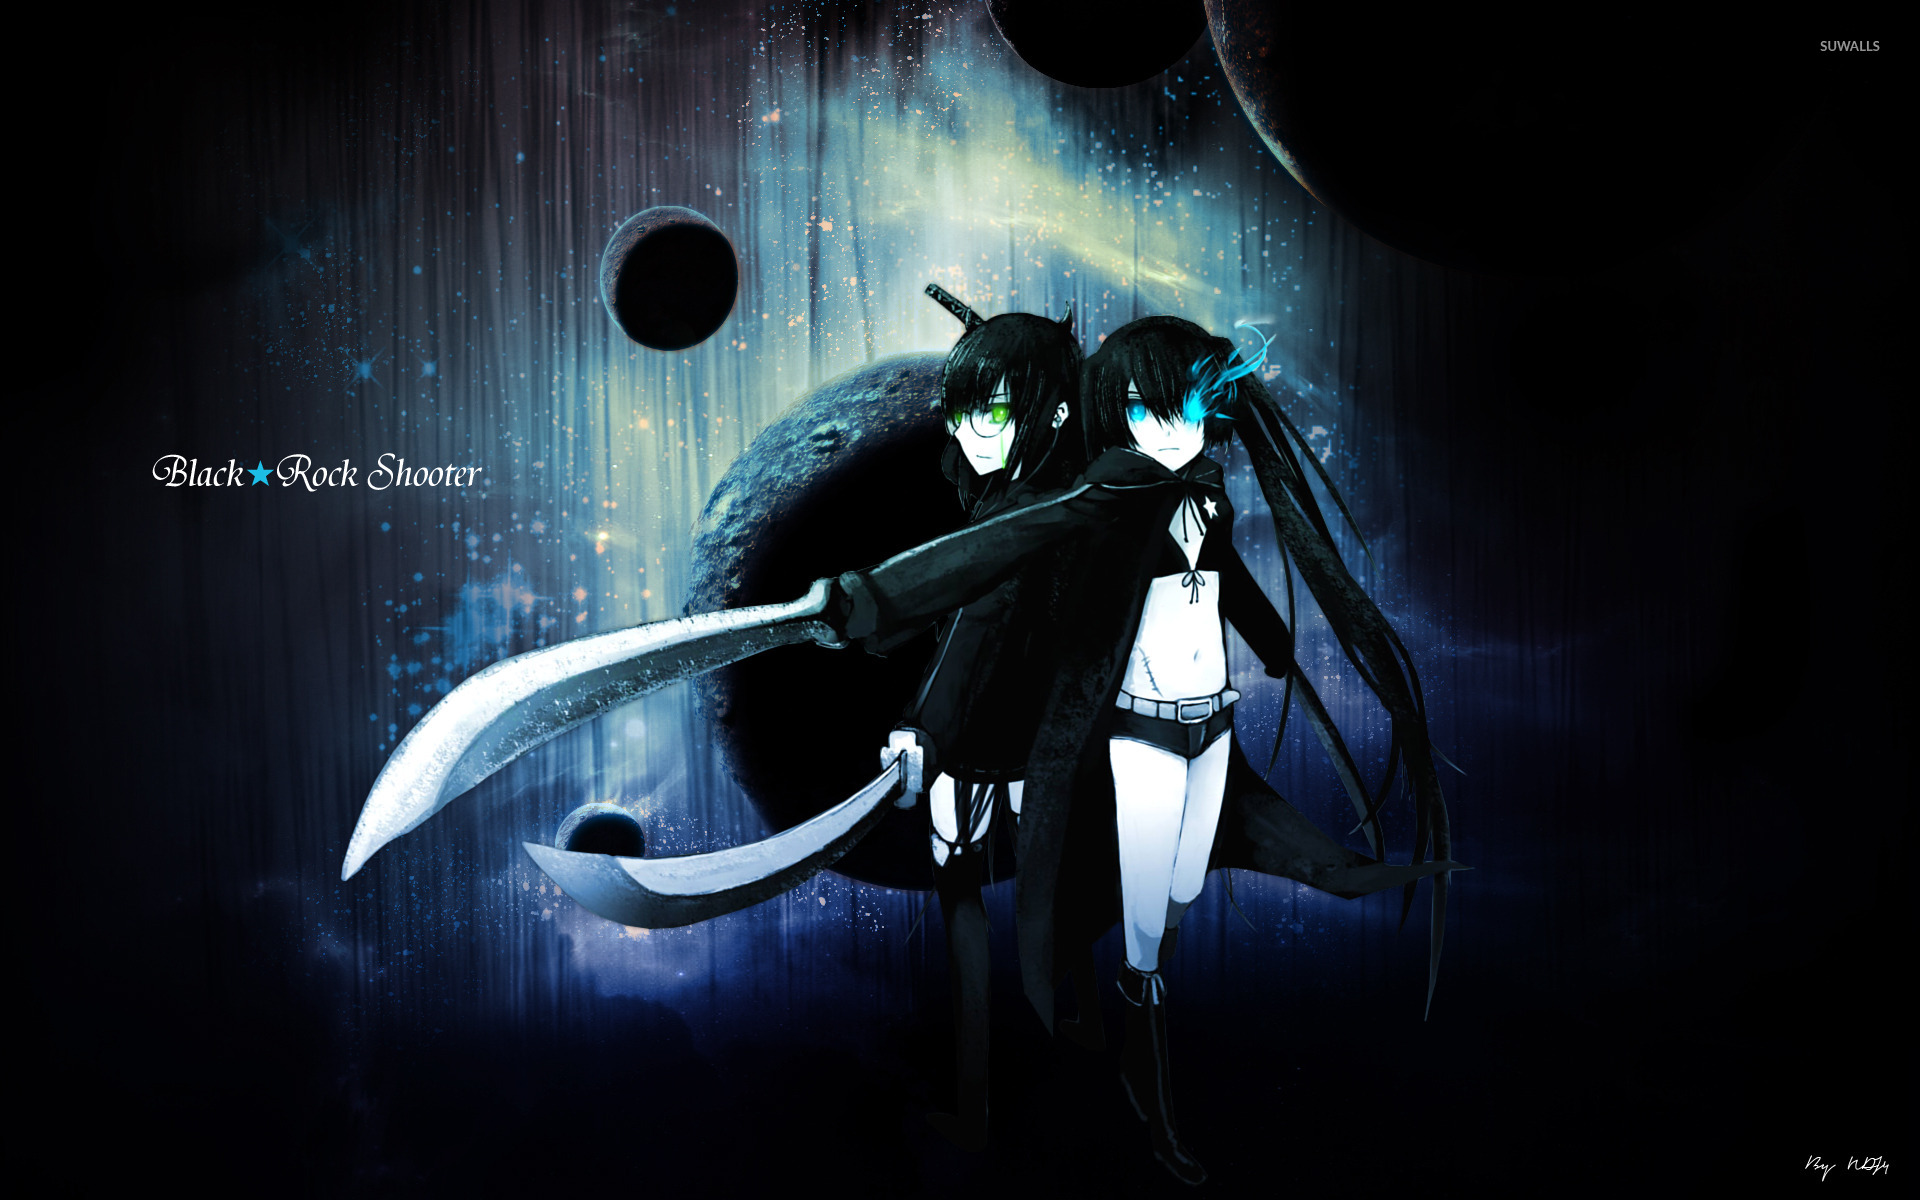 black rock shooter [10] wallpaper - anime wallpapers - #10067